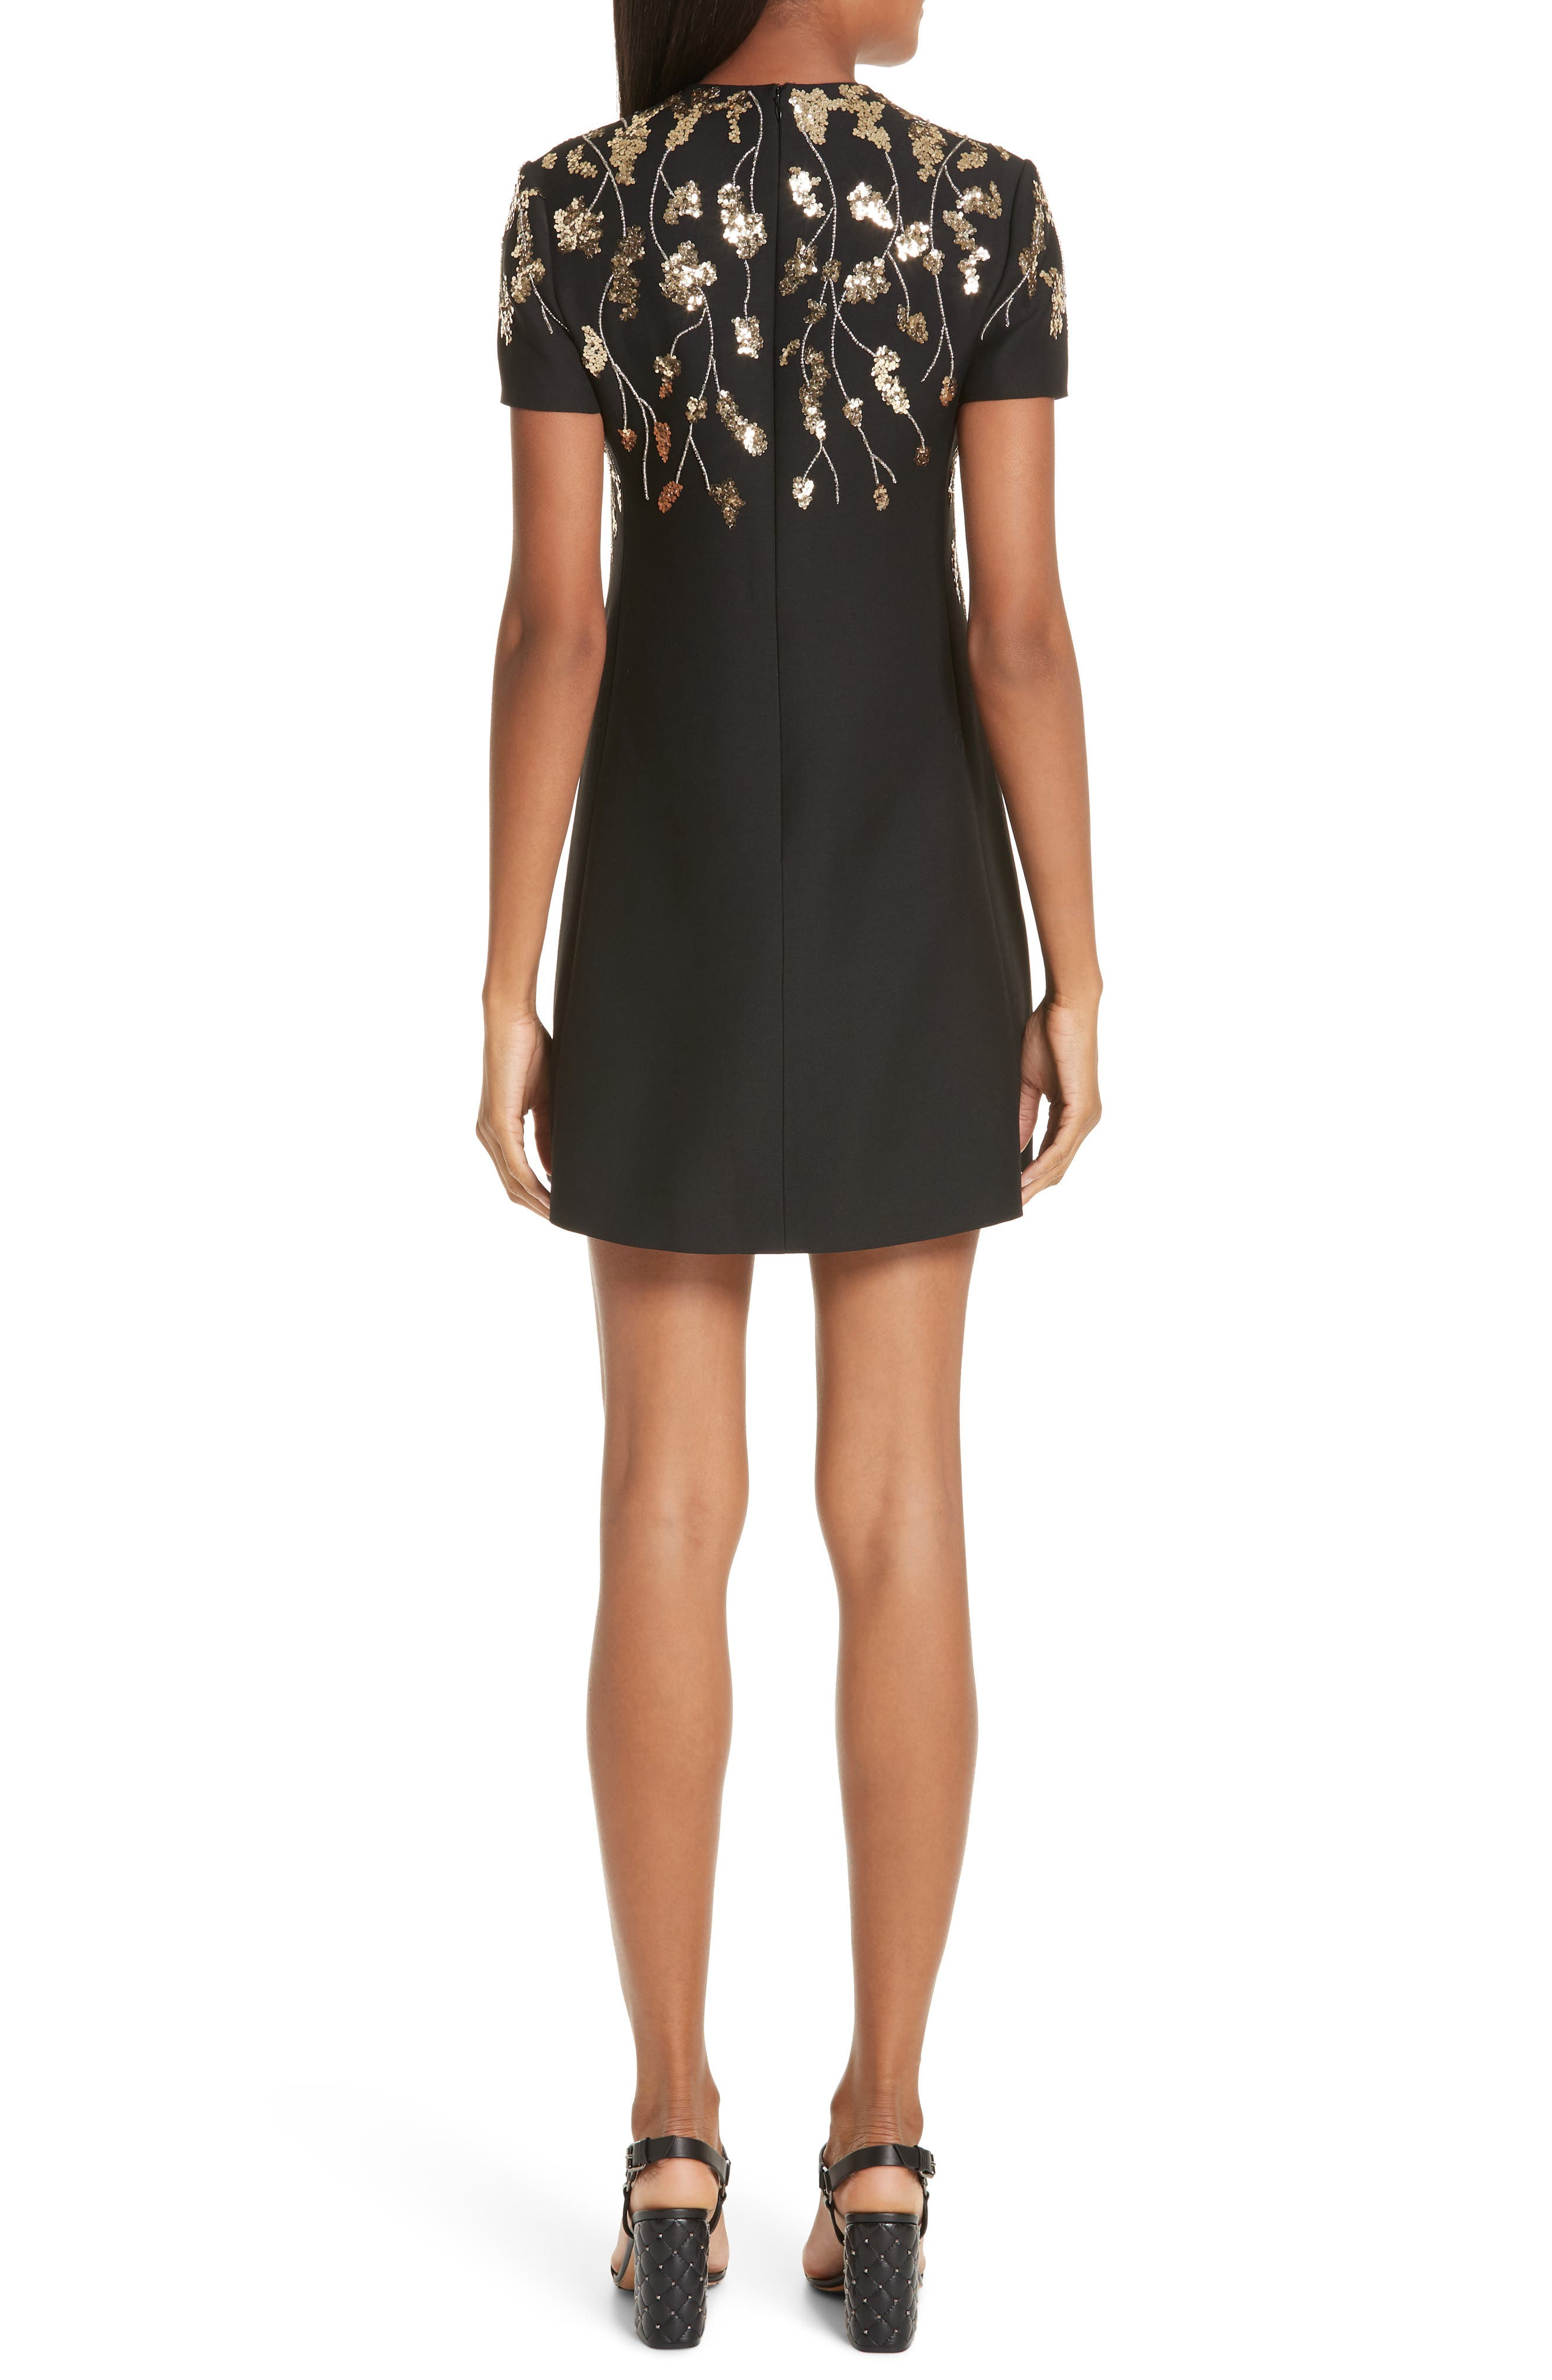 VALENTINO, Floral Embroidered Crepe Couture Dress, Alternate thumbnail 2, color, BLACK GOLD